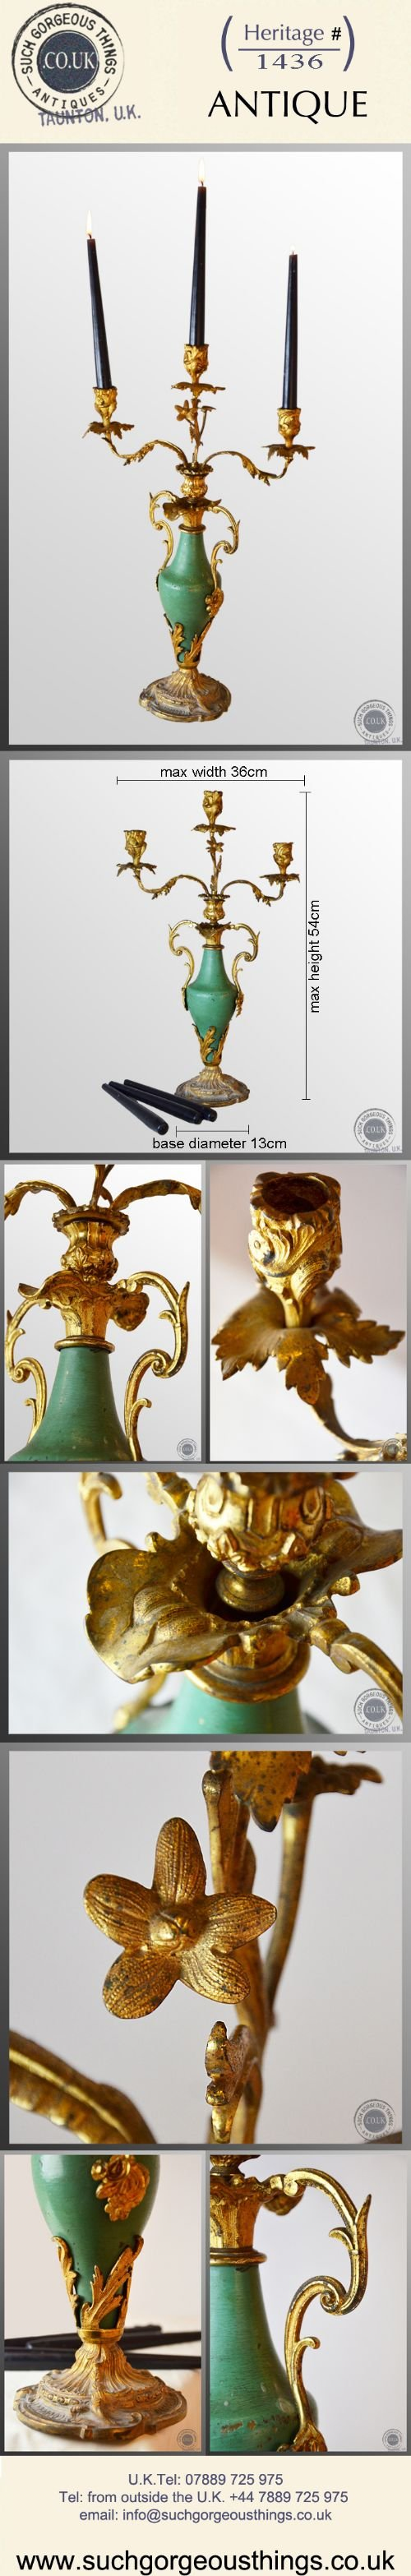 antique candelabra triple candle table centre piece italian gilt metal c1850 - photo angle #5